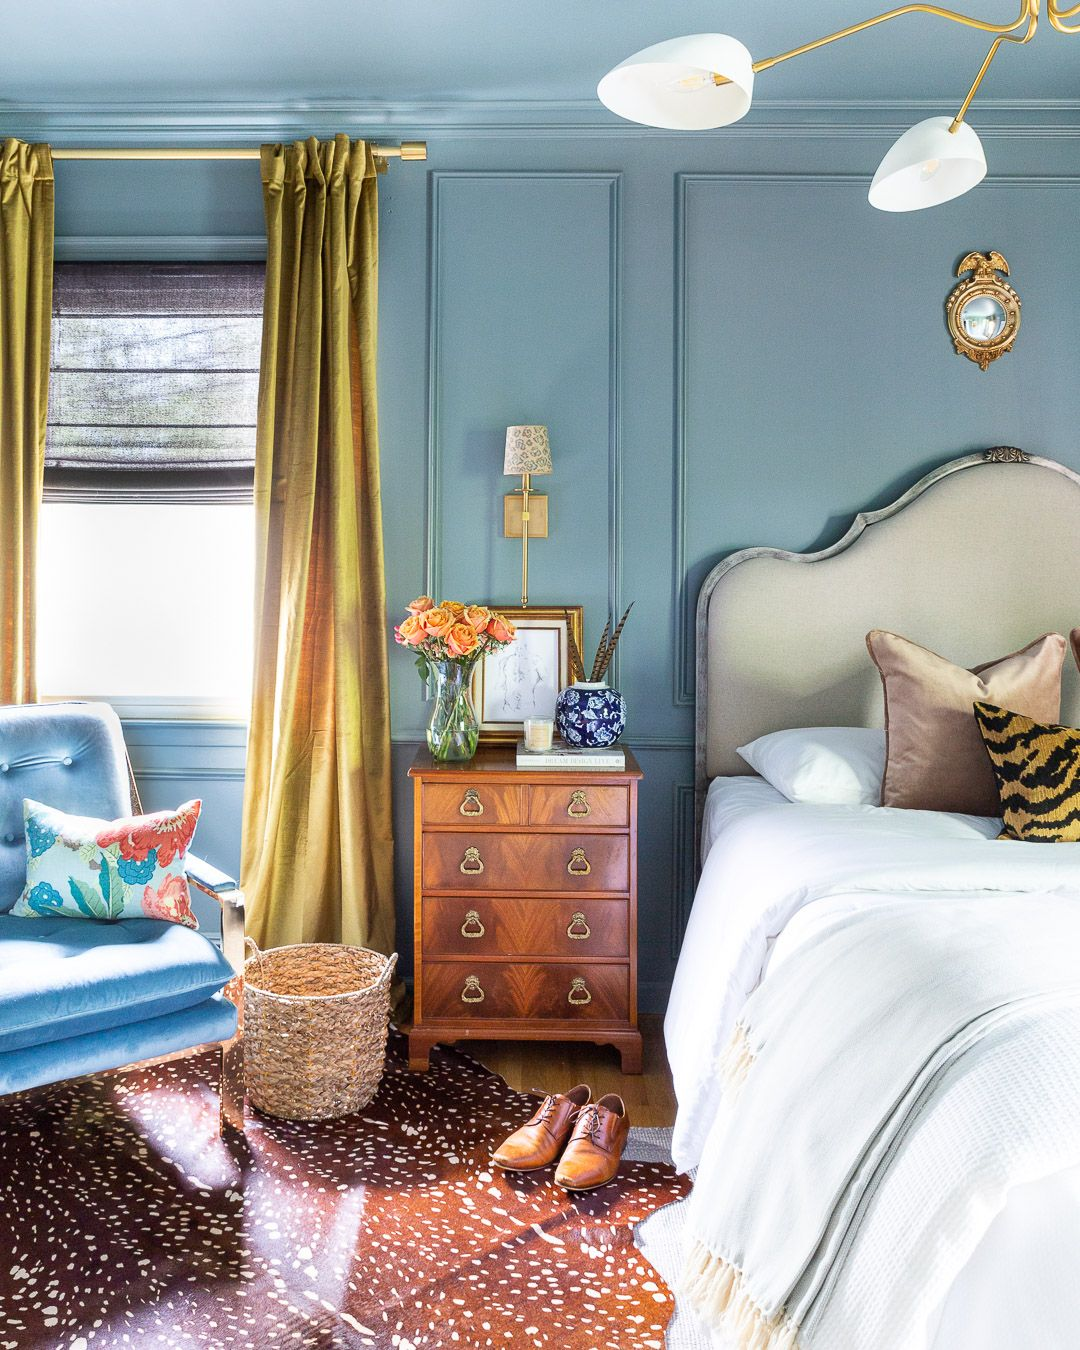 Design An Elegant Bedroom In 5 Easy Steps: One Room Challenge, The Reveal: A Modern Traditional